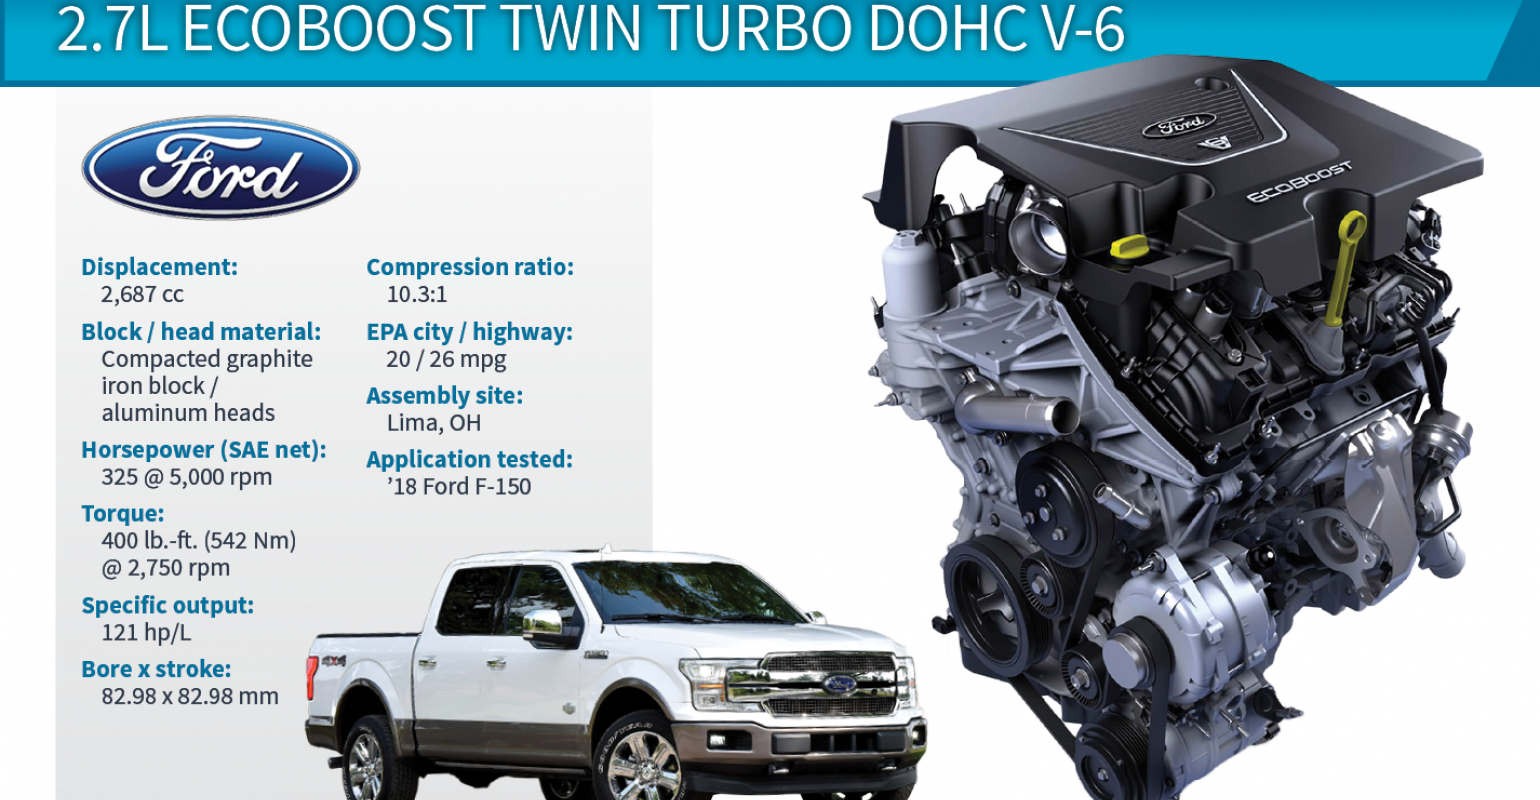 2.7 L Ecoboost V6 >> Wards 10 Best Engines Winner Ford F 150 2 7l Ecoboost Twin Turbo V